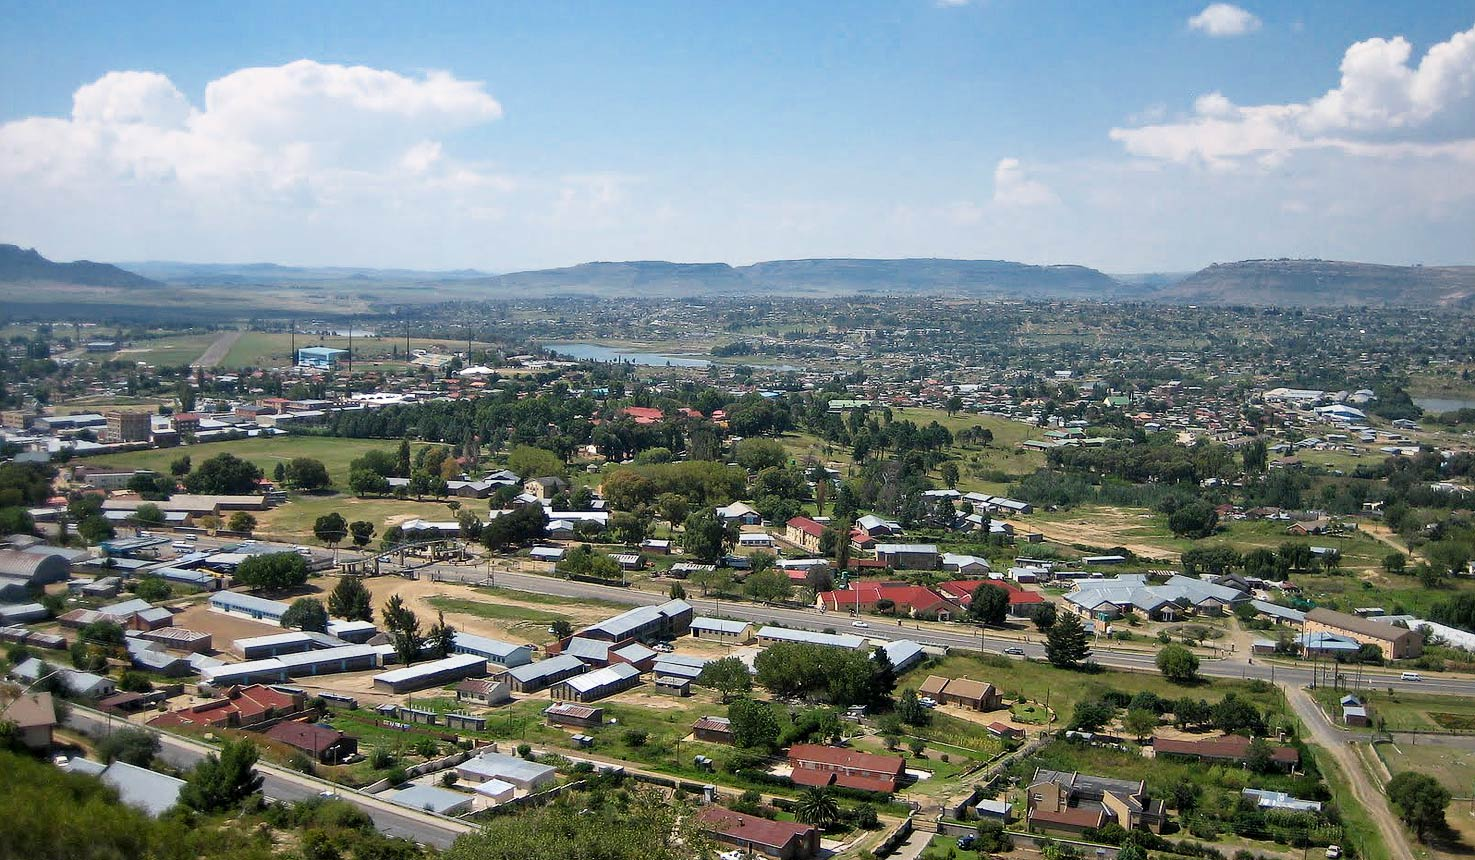 Maseru, Lesotho Travel Guide and Travel Info